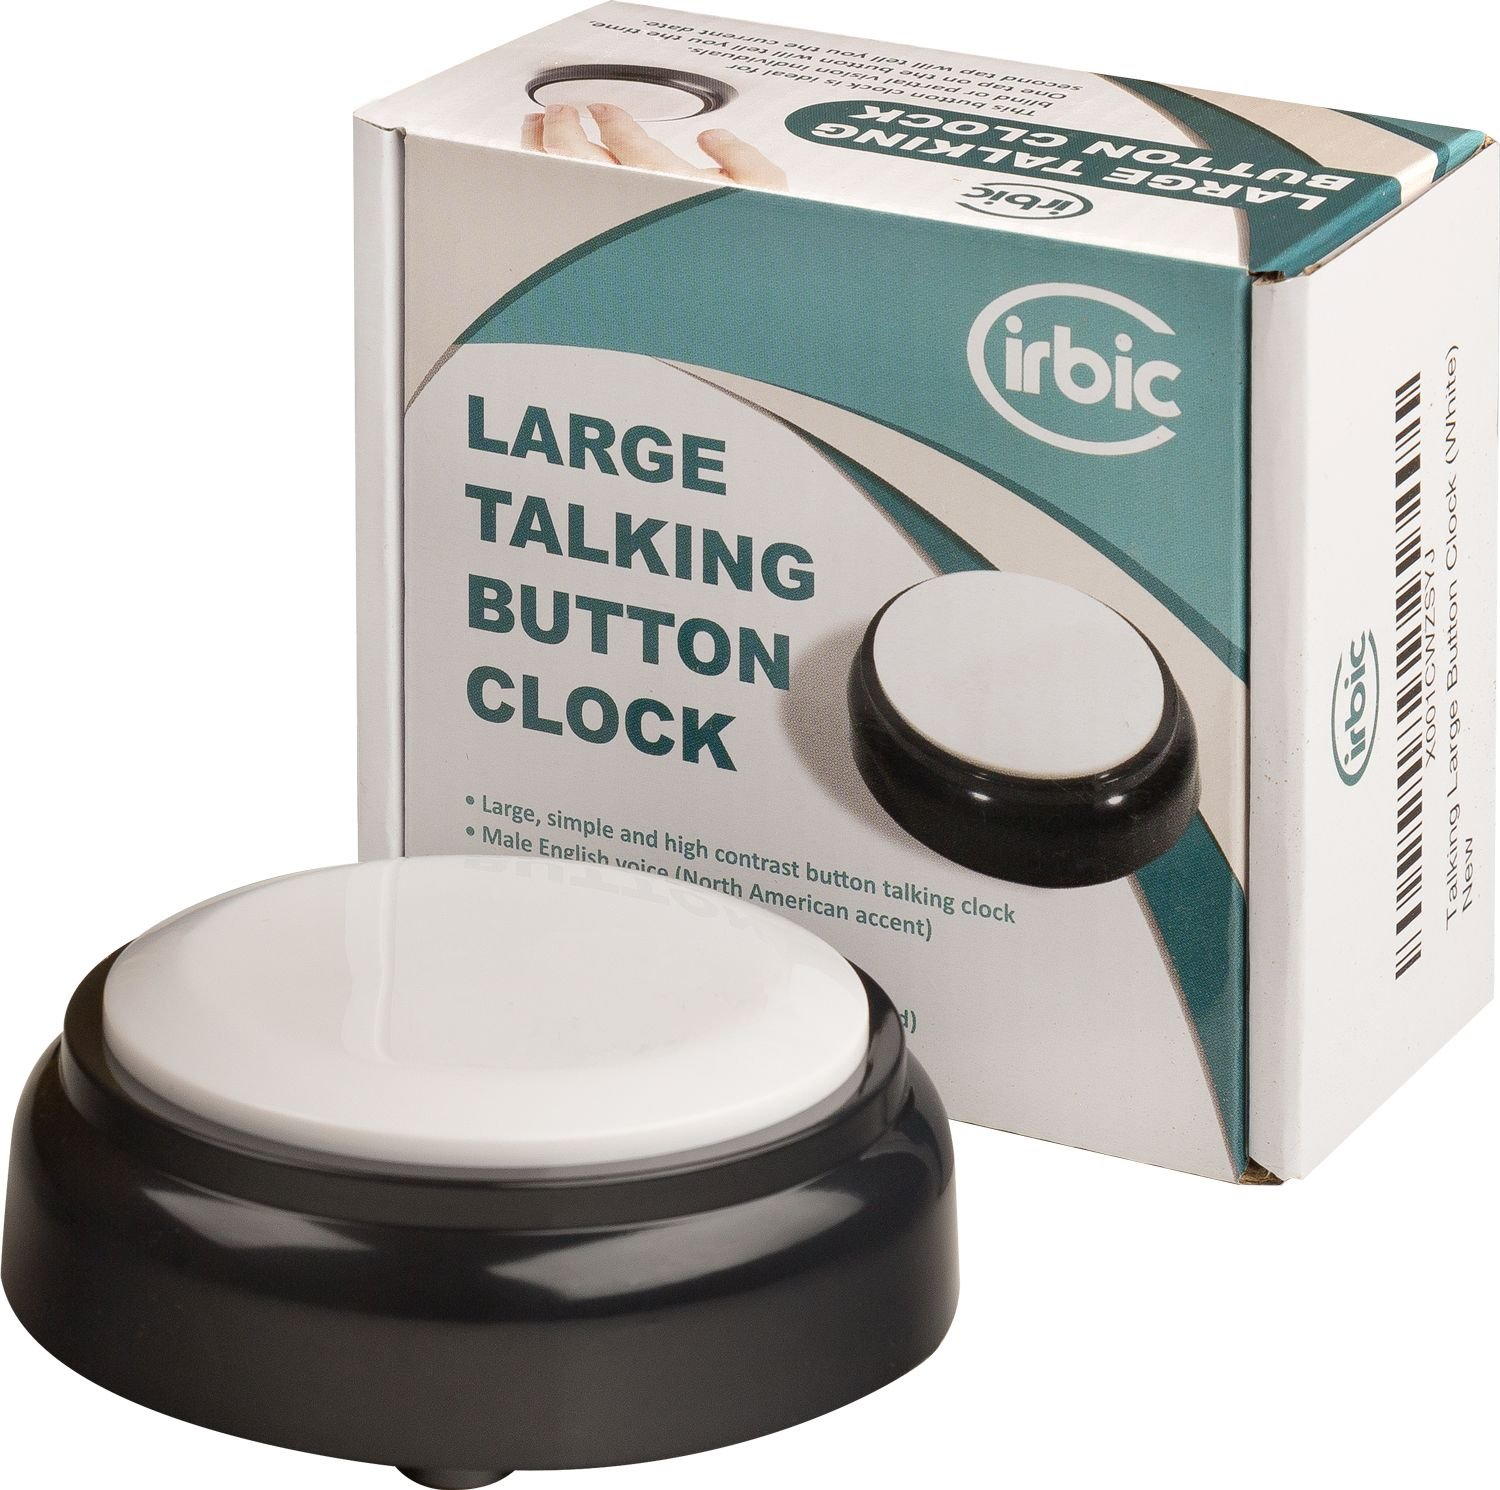 Talking Large Button Alarm Clock - Telling Time and Date for Elderly, Impaired Sight or Blind